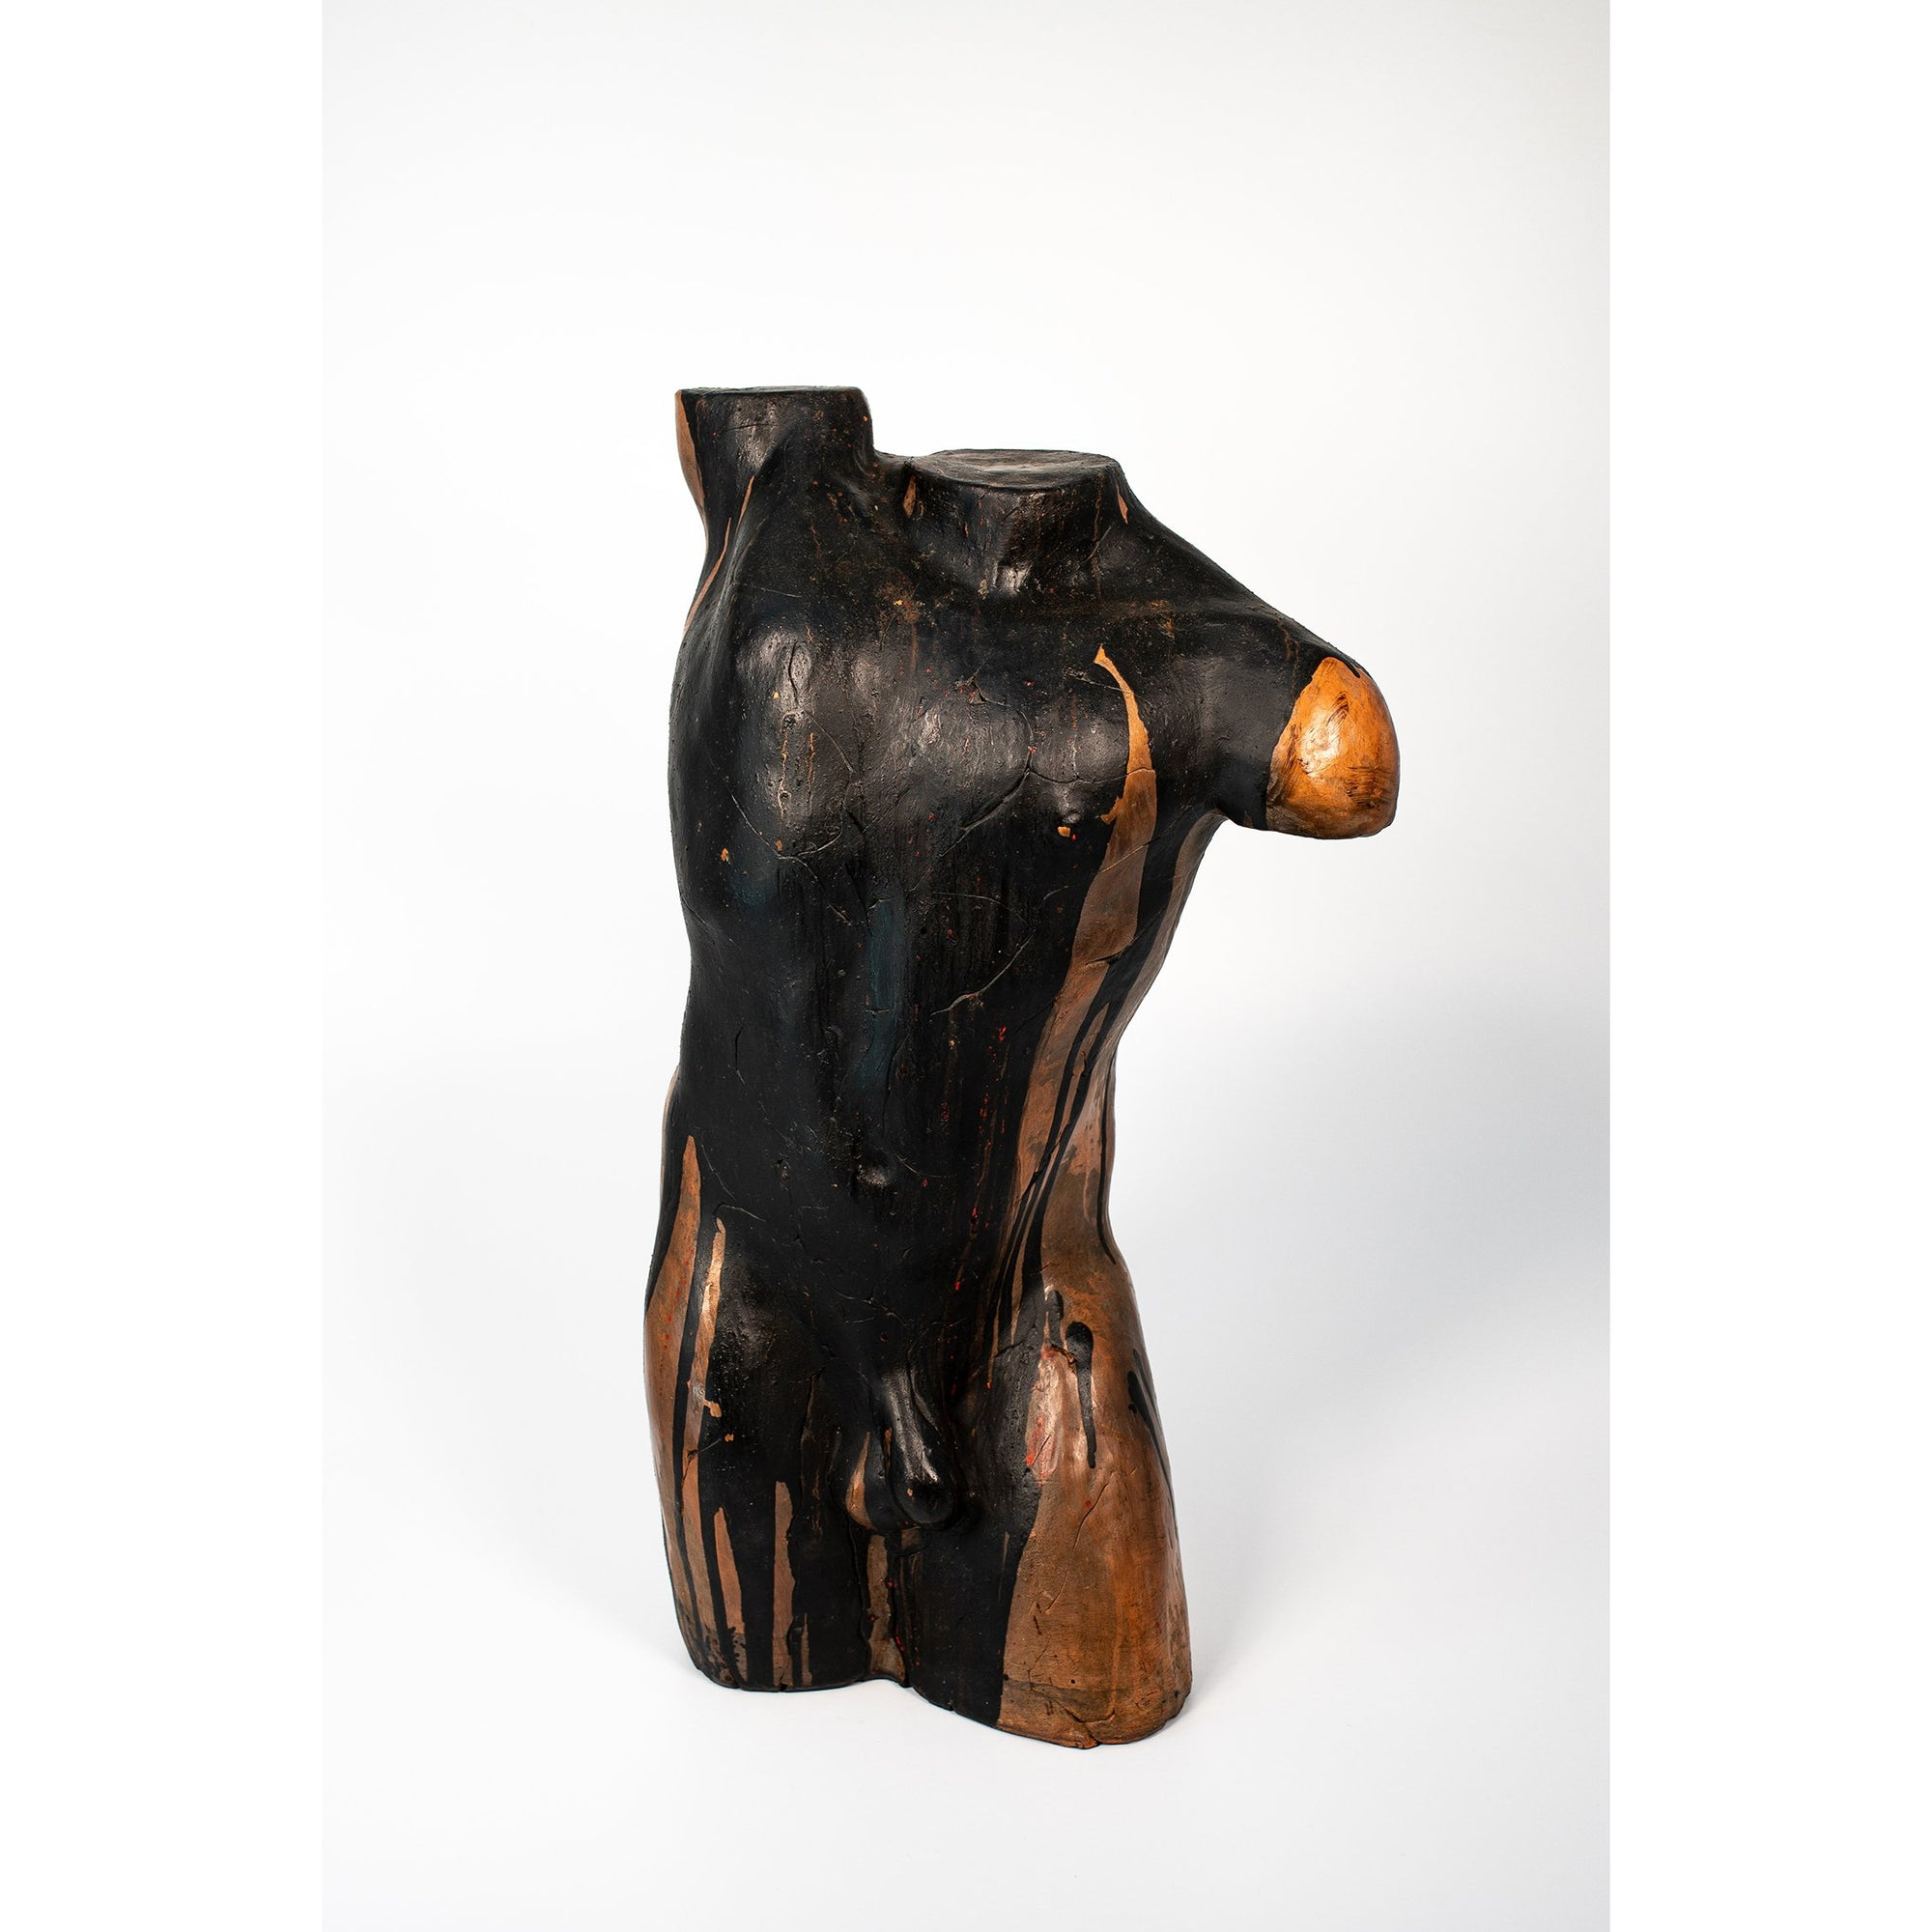 Ni, Glazed terracotta standing figure, by Sophie Howard, available from Padstow Gallery, Cornwall